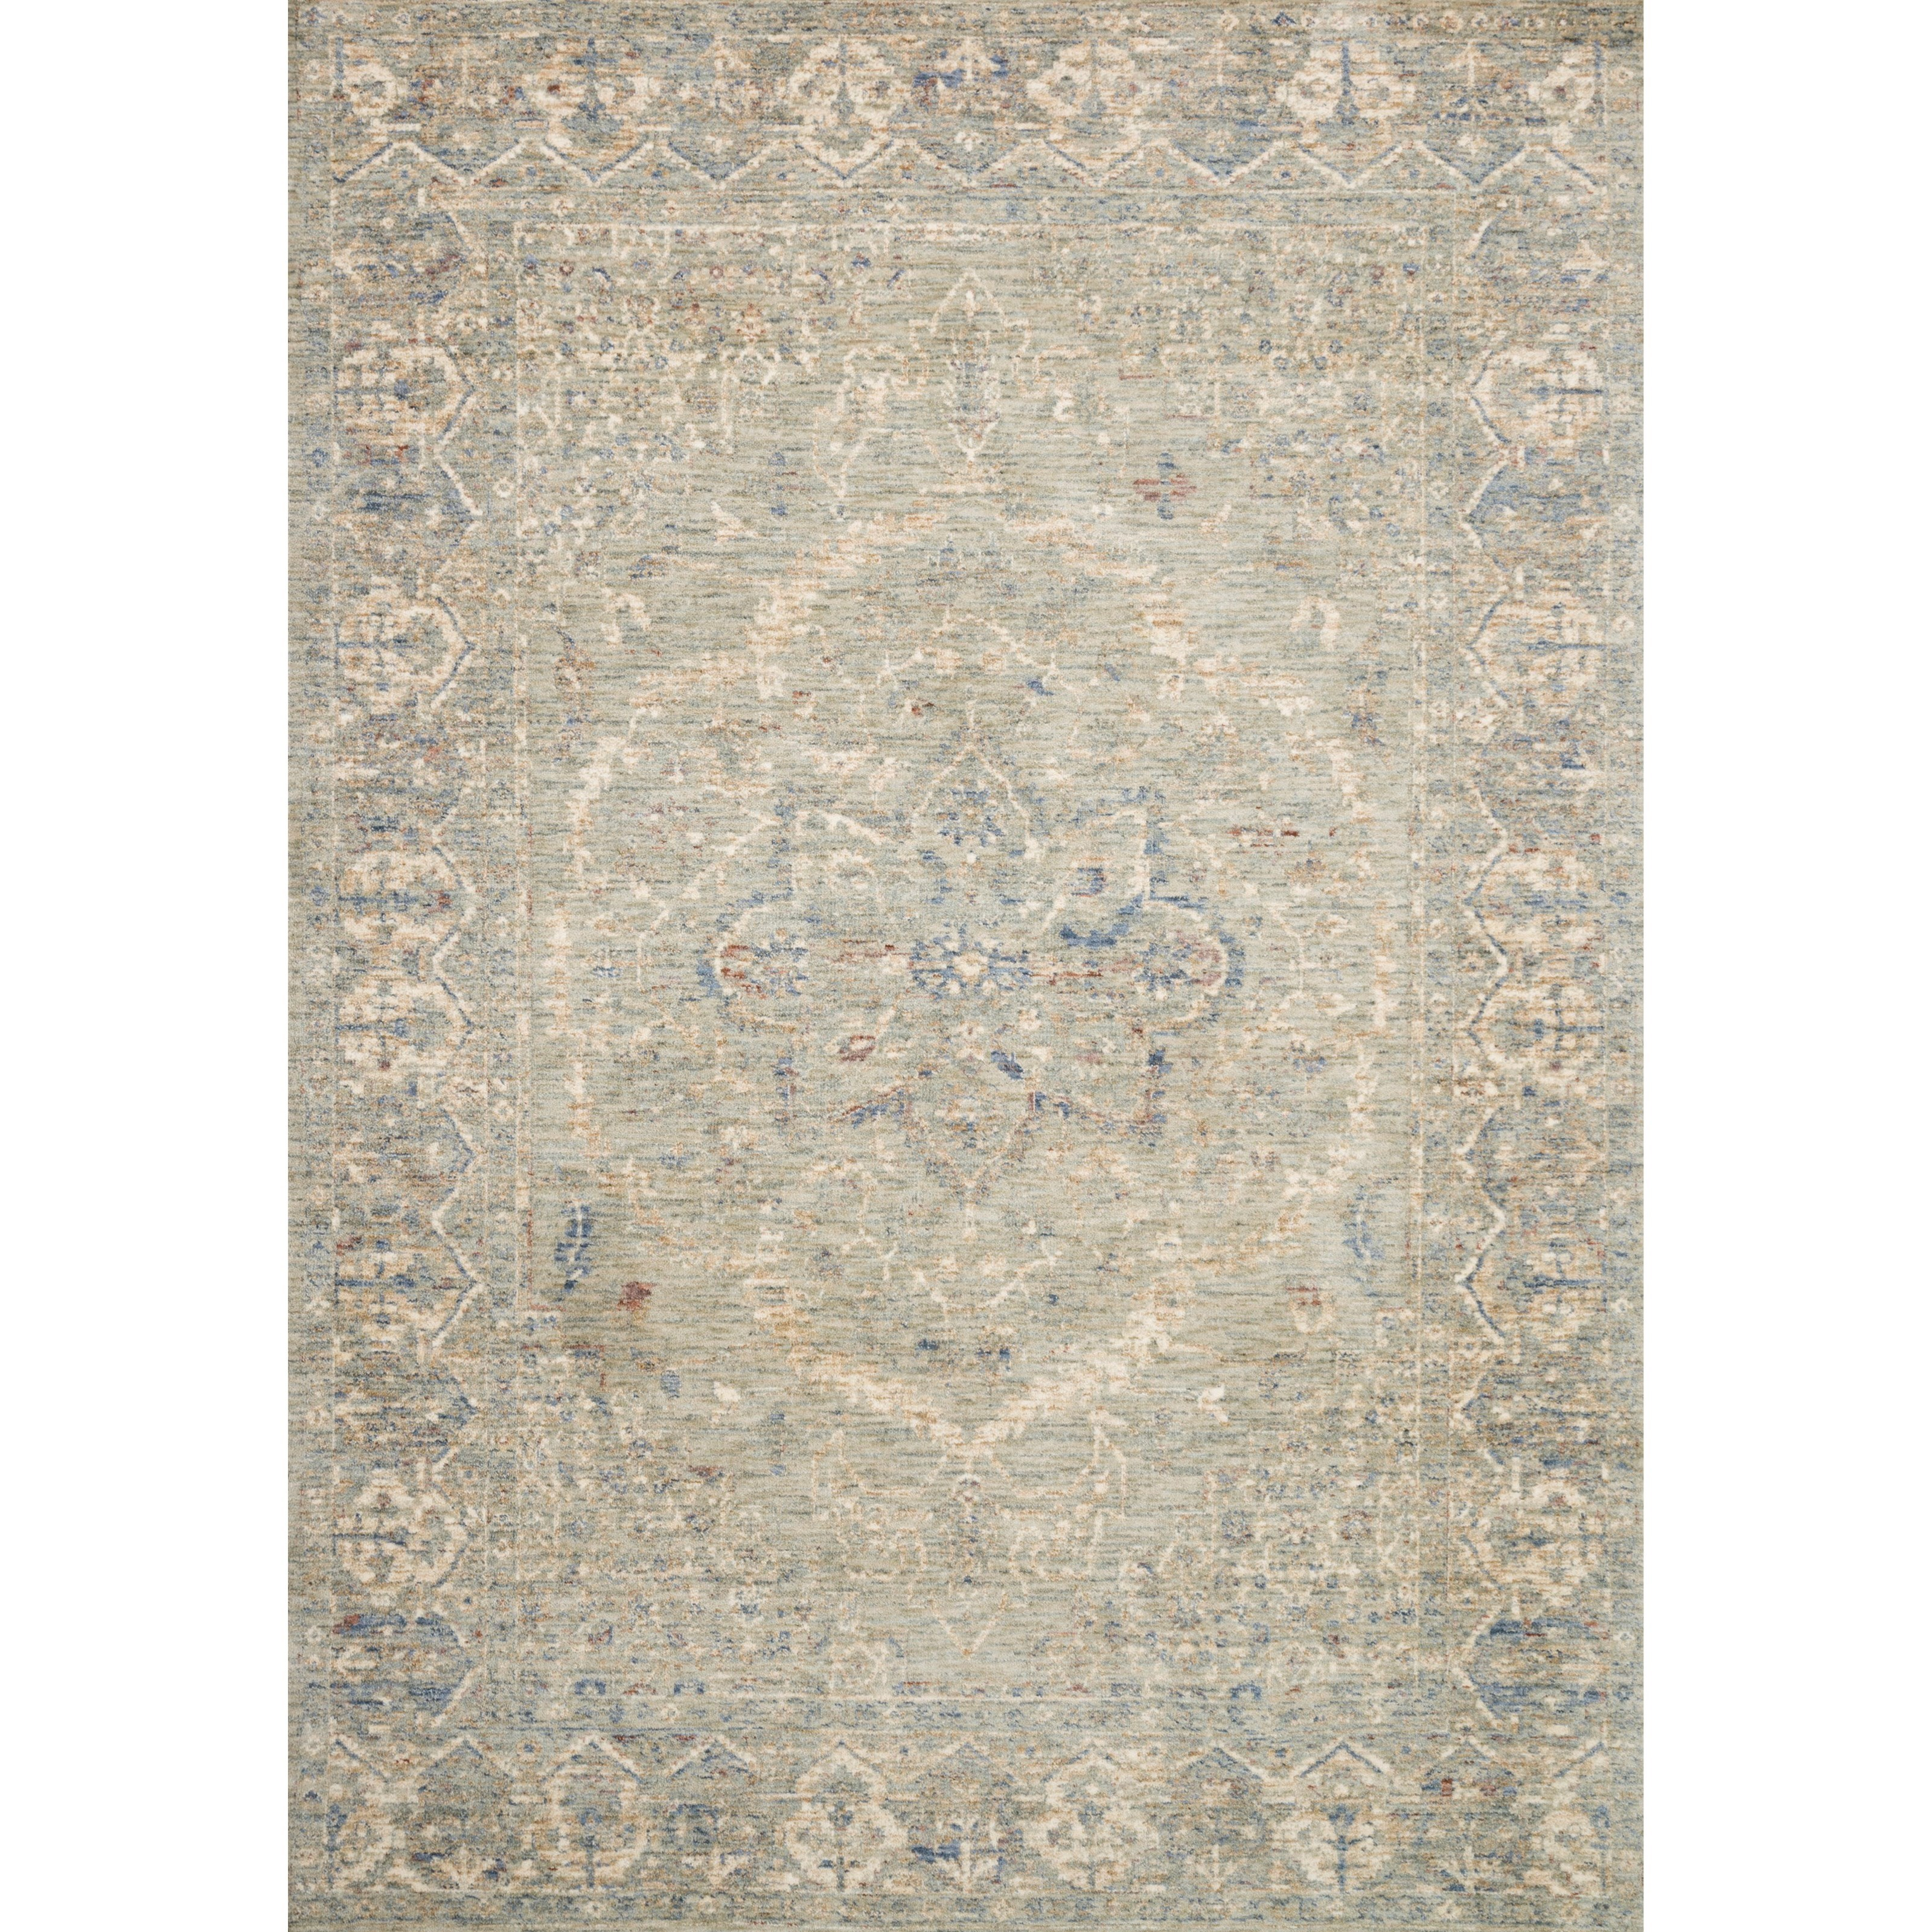 """Revere 1'6"""" x 1'6""""  Mist Rug by Loloi Rugs at Virginia Furniture Market"""